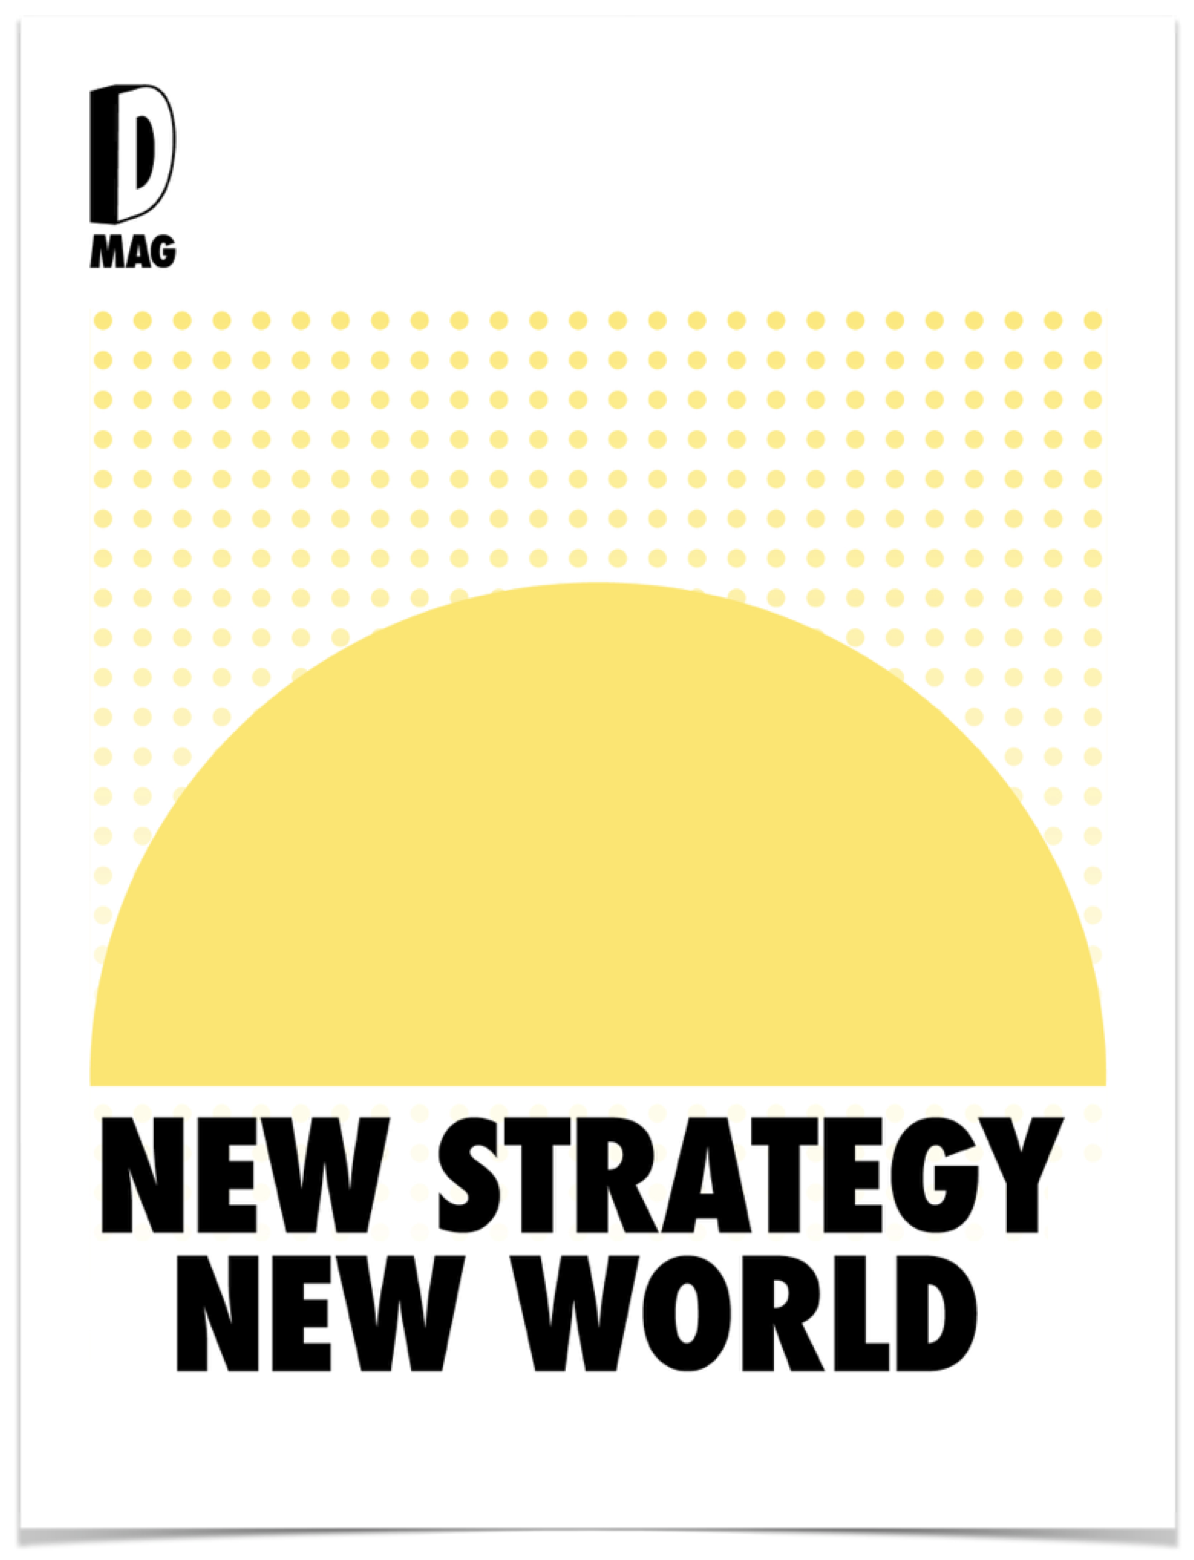 DMAG - DMag is a new magazine from the FSC focused solely on disruption theory and practice across all industries. Disruptors, disruptees and experts share their knowledge and strategies helping our clients and talent prepare for their futures.